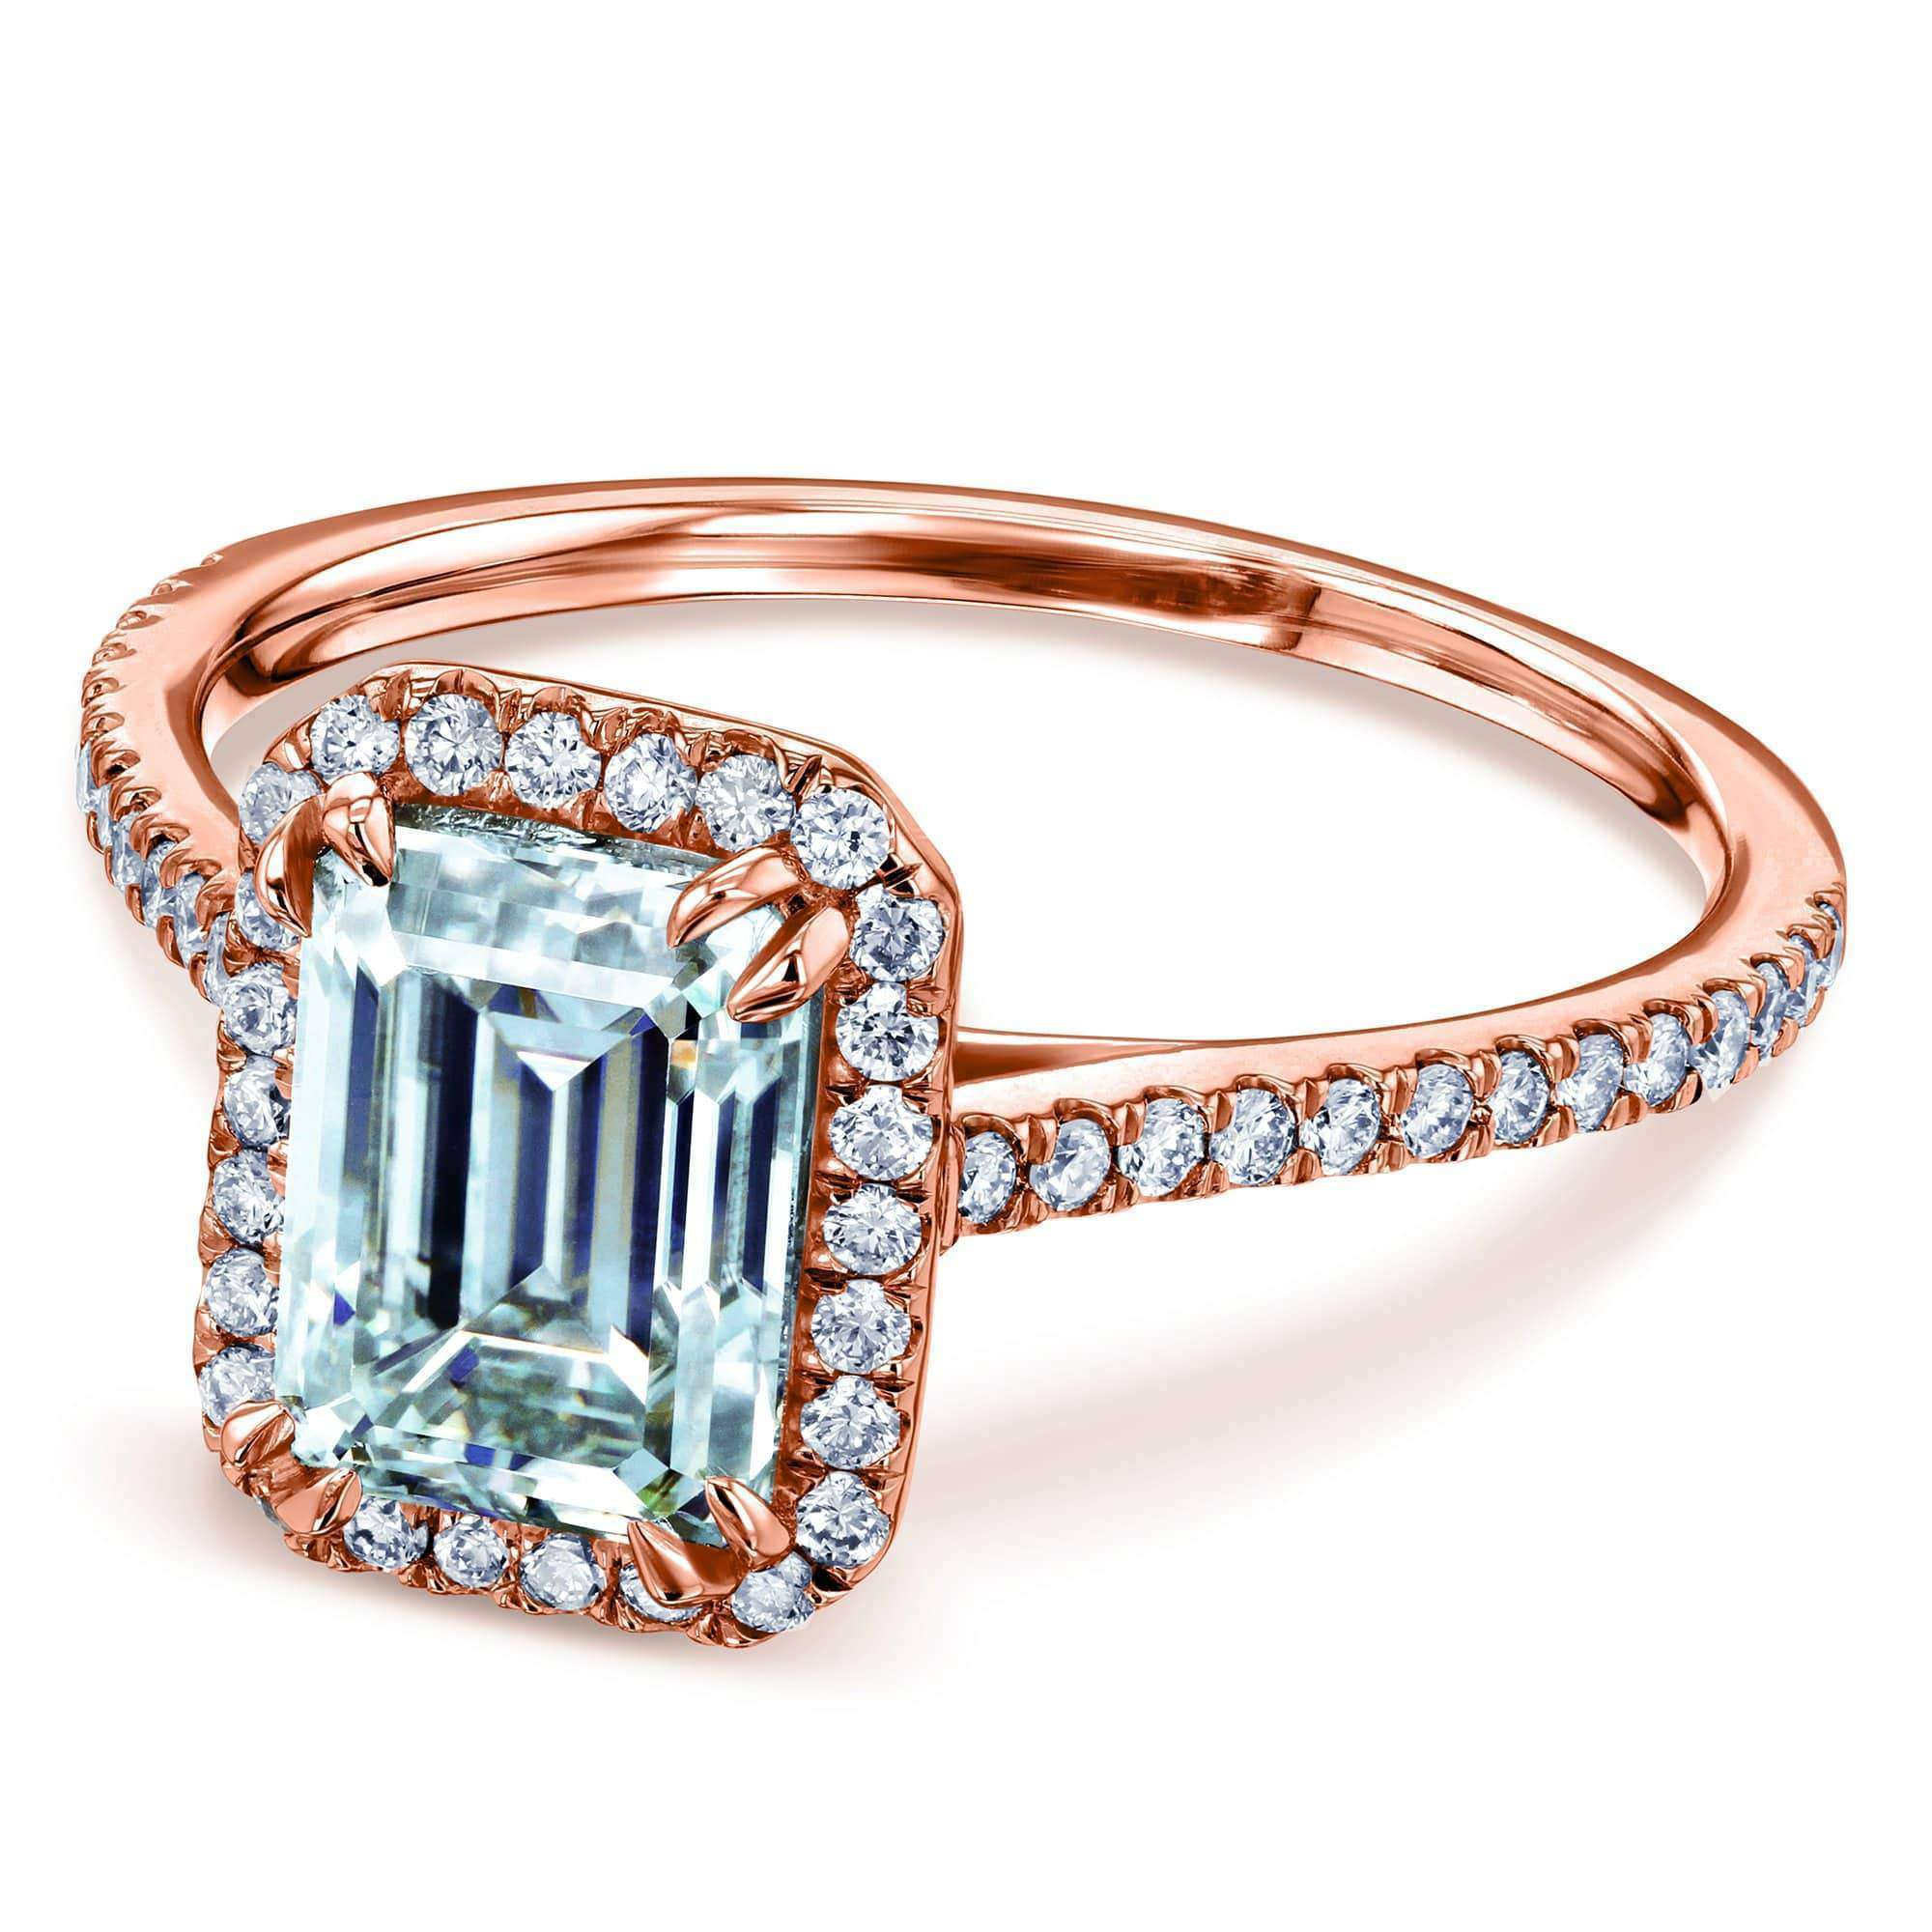 Coupons 1.75ct Emerald Forever One Moissanite Halo Ring - rose-gold 4.5